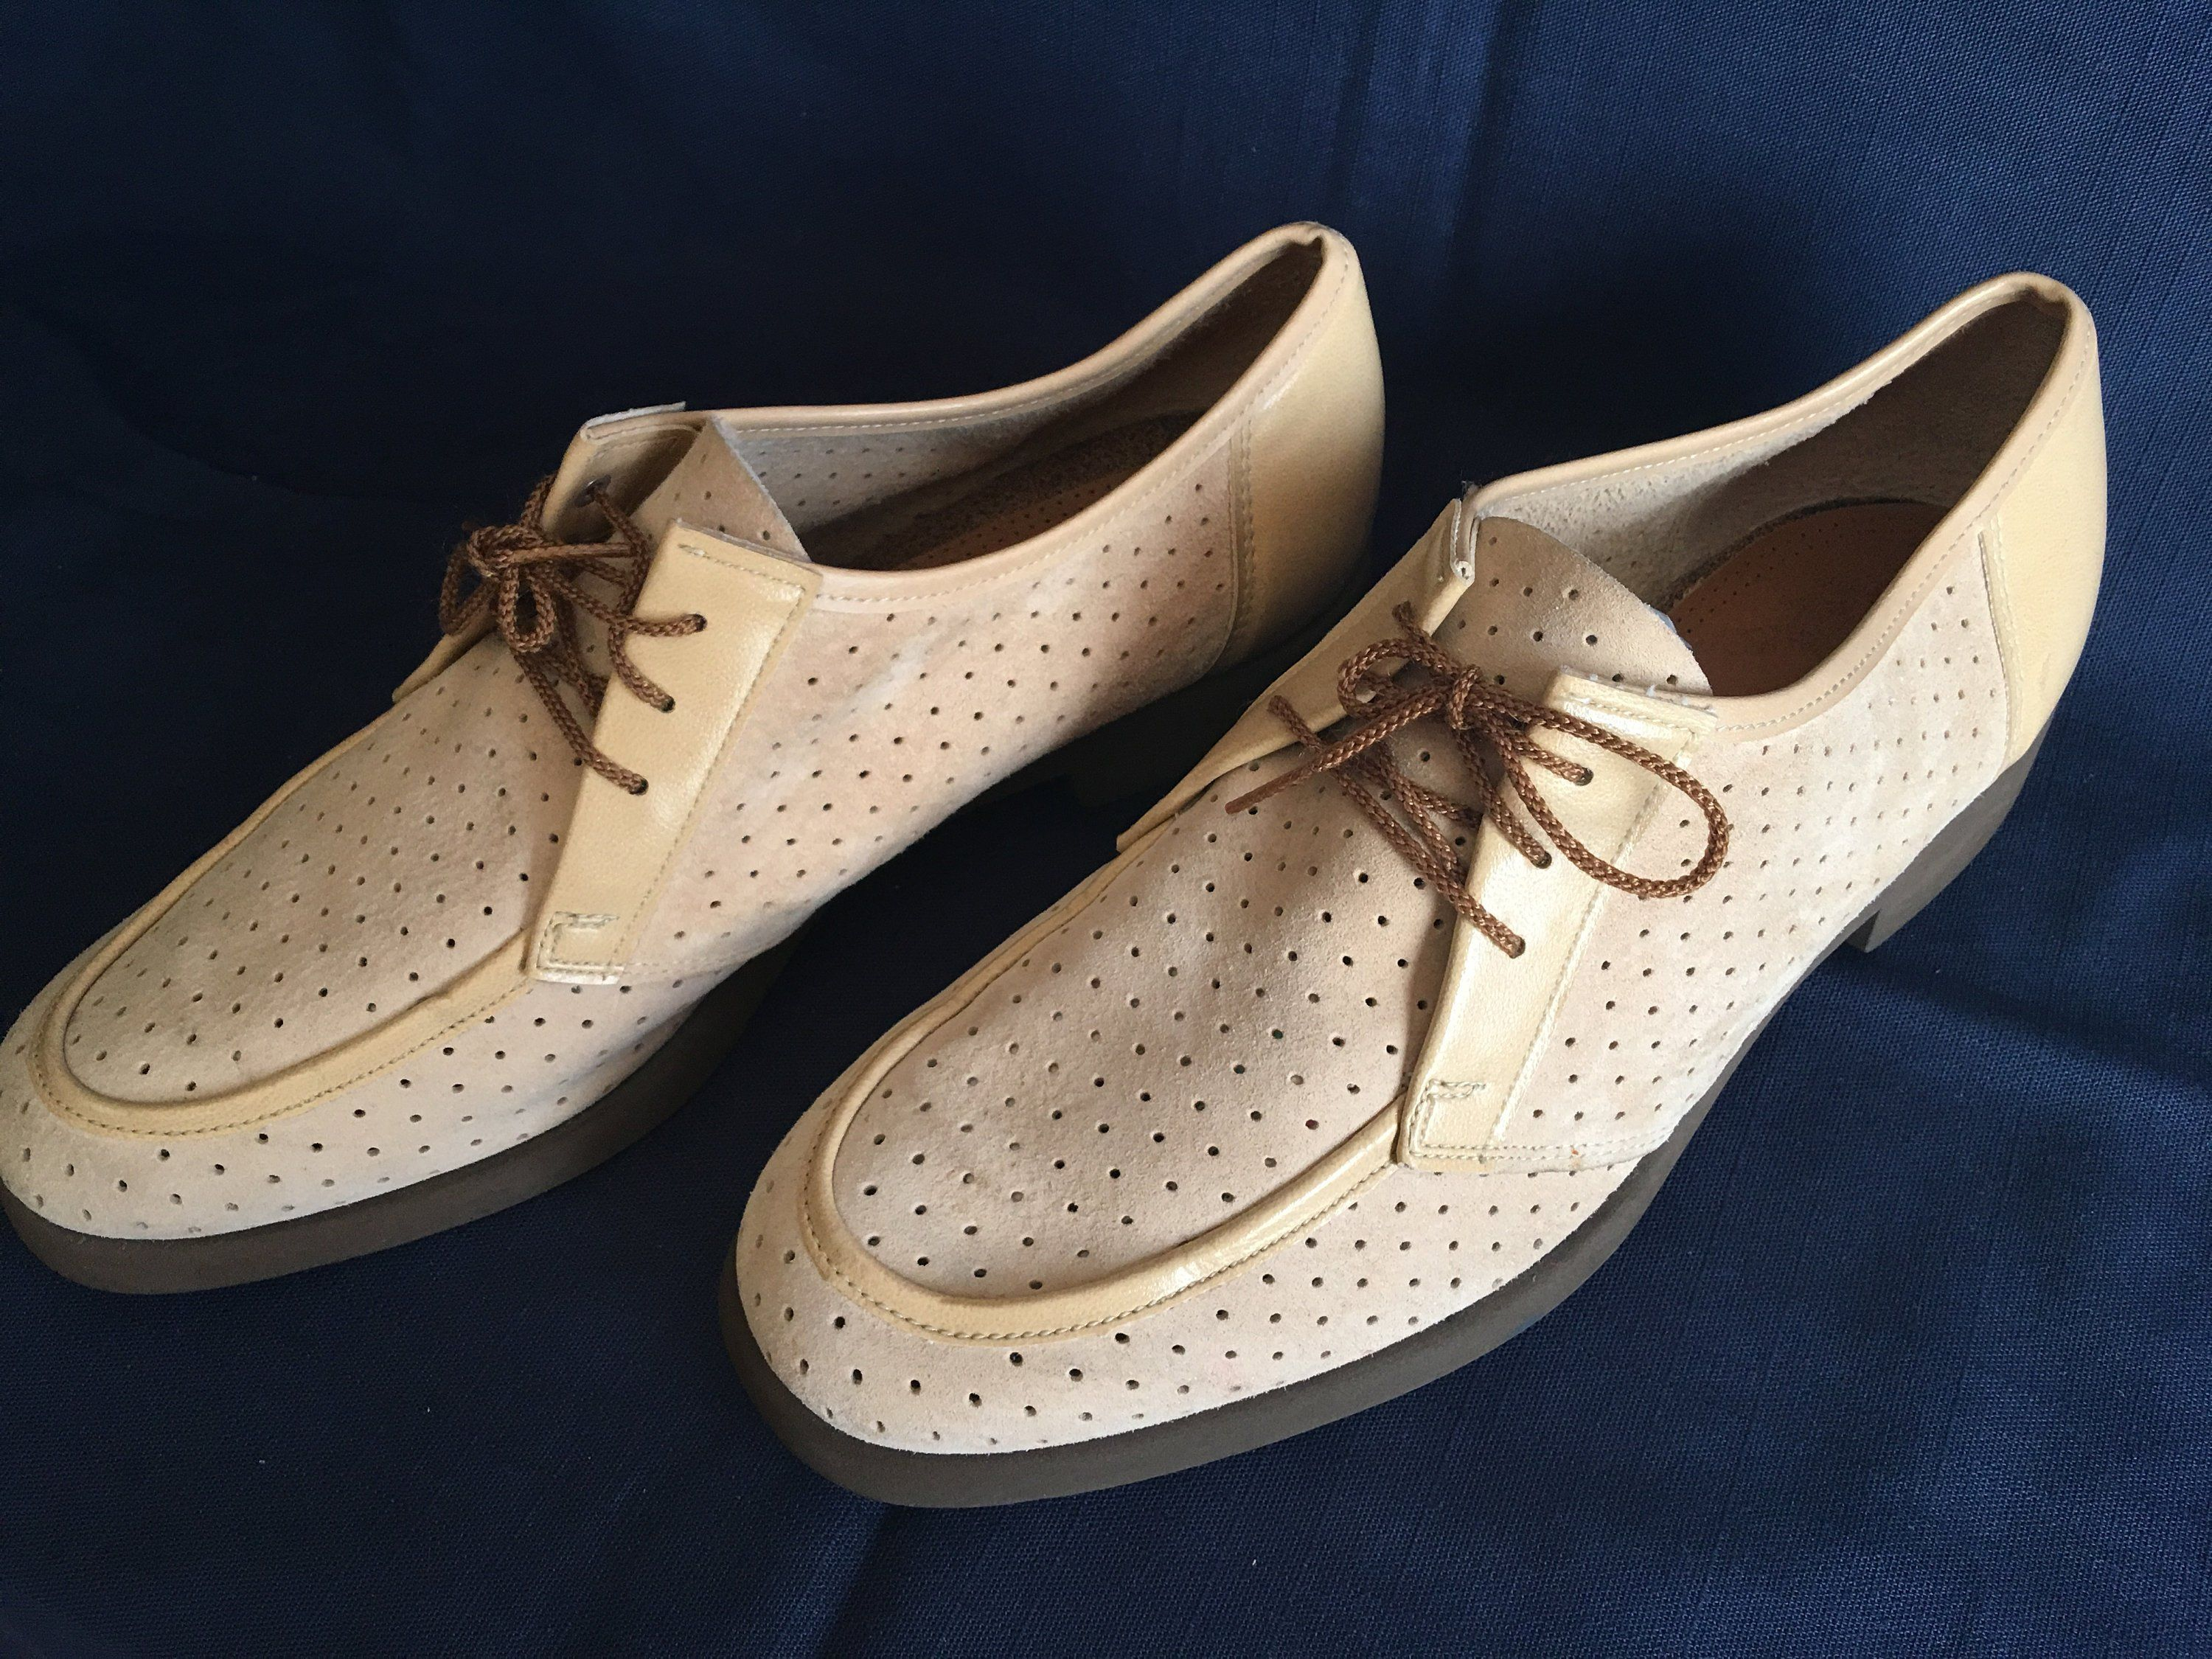 Vintage 60 S Hush Puppies Shoes Etsy Hush Puppies Shoes Hush Puppies Suede Shoes